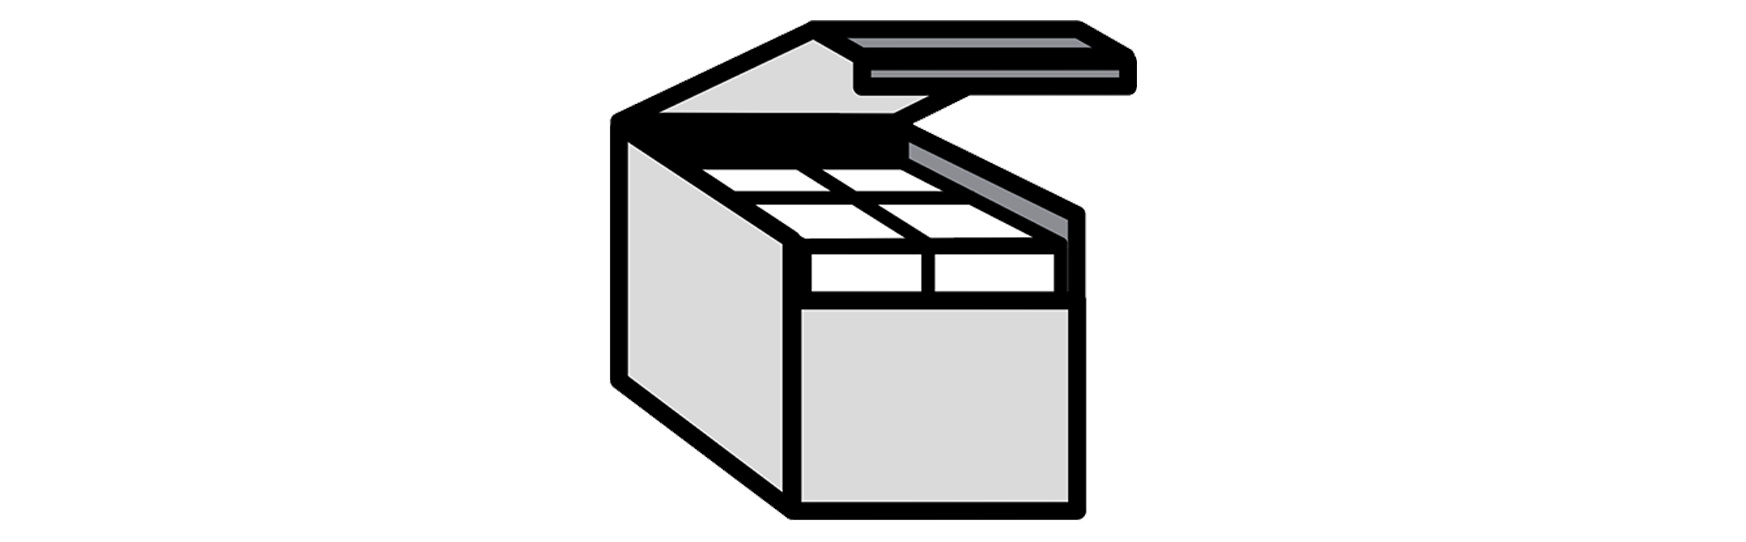 icon_package.png